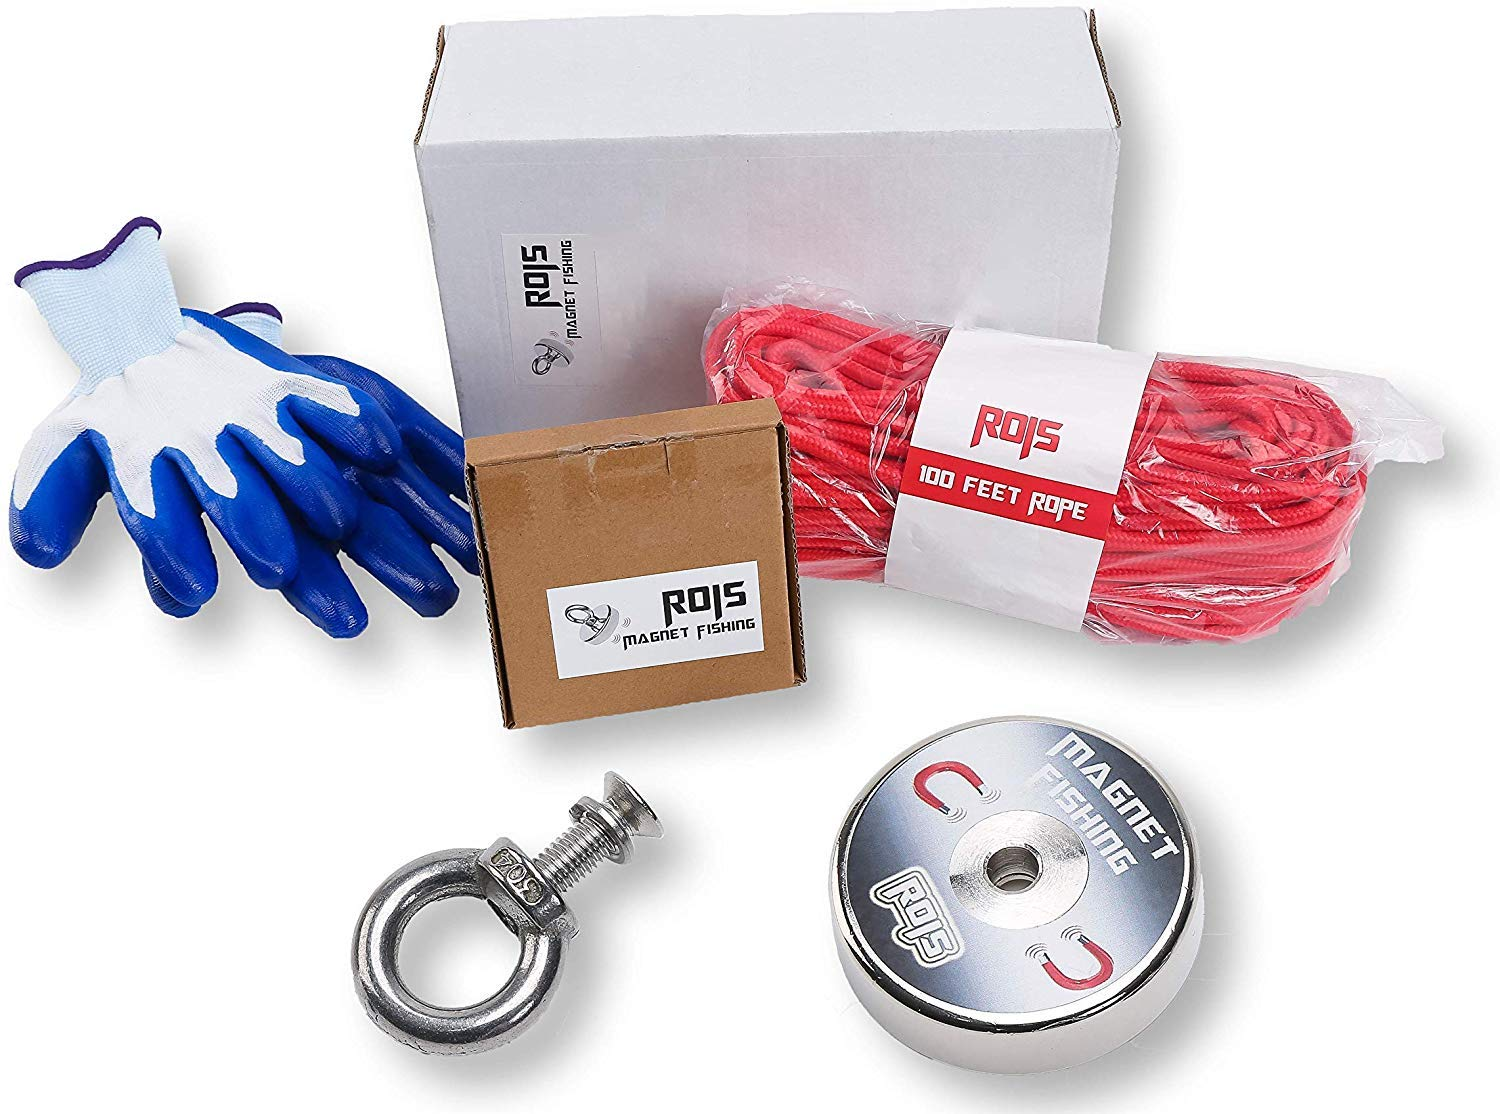 Super Powerful Magnet Fishing with Diameter 2.36' and Maximum Pulling Force of 380lbs Including 100 feet Rope and Protection Gloves by ROIS-SHOP